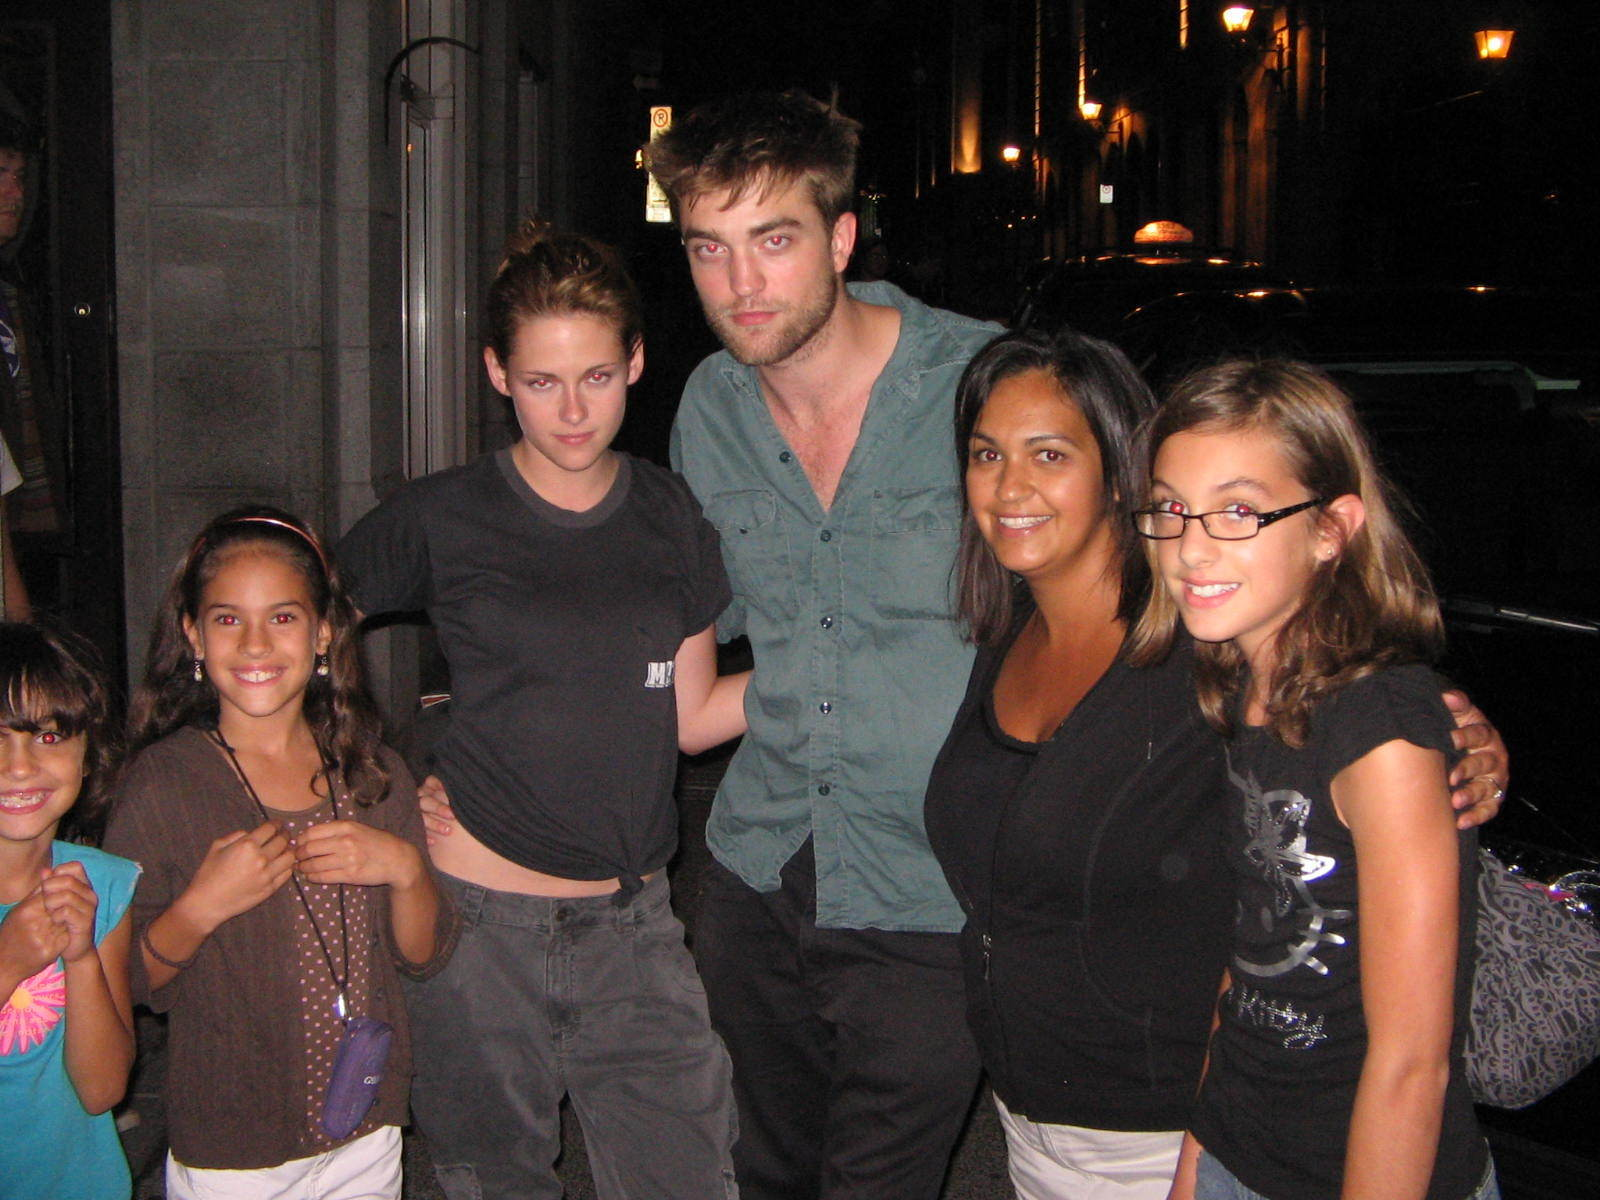 Rob-Kristen-with-fans-August-15-robert-pattinson-and-kristen-stewart